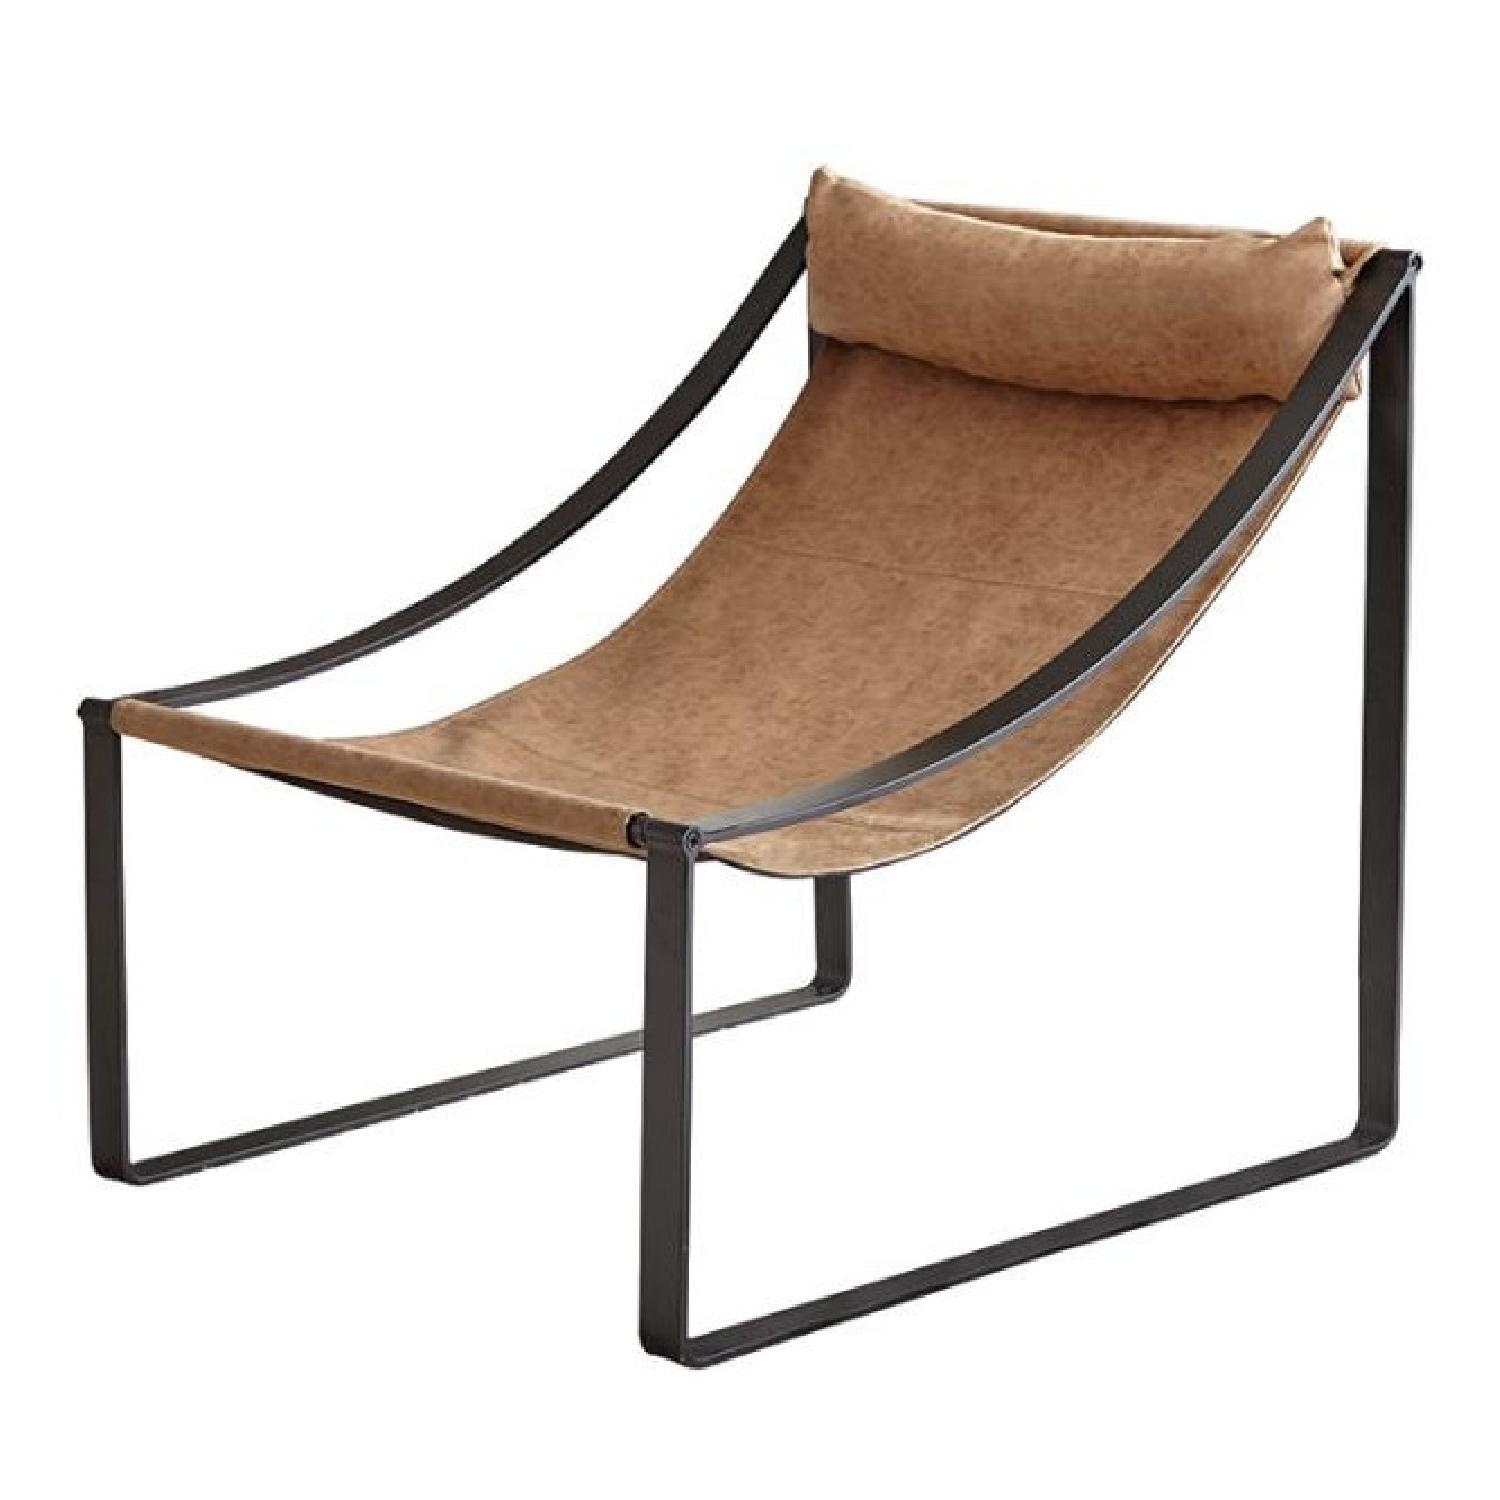 Light Brown Hammock Style Accent Chair - image-1